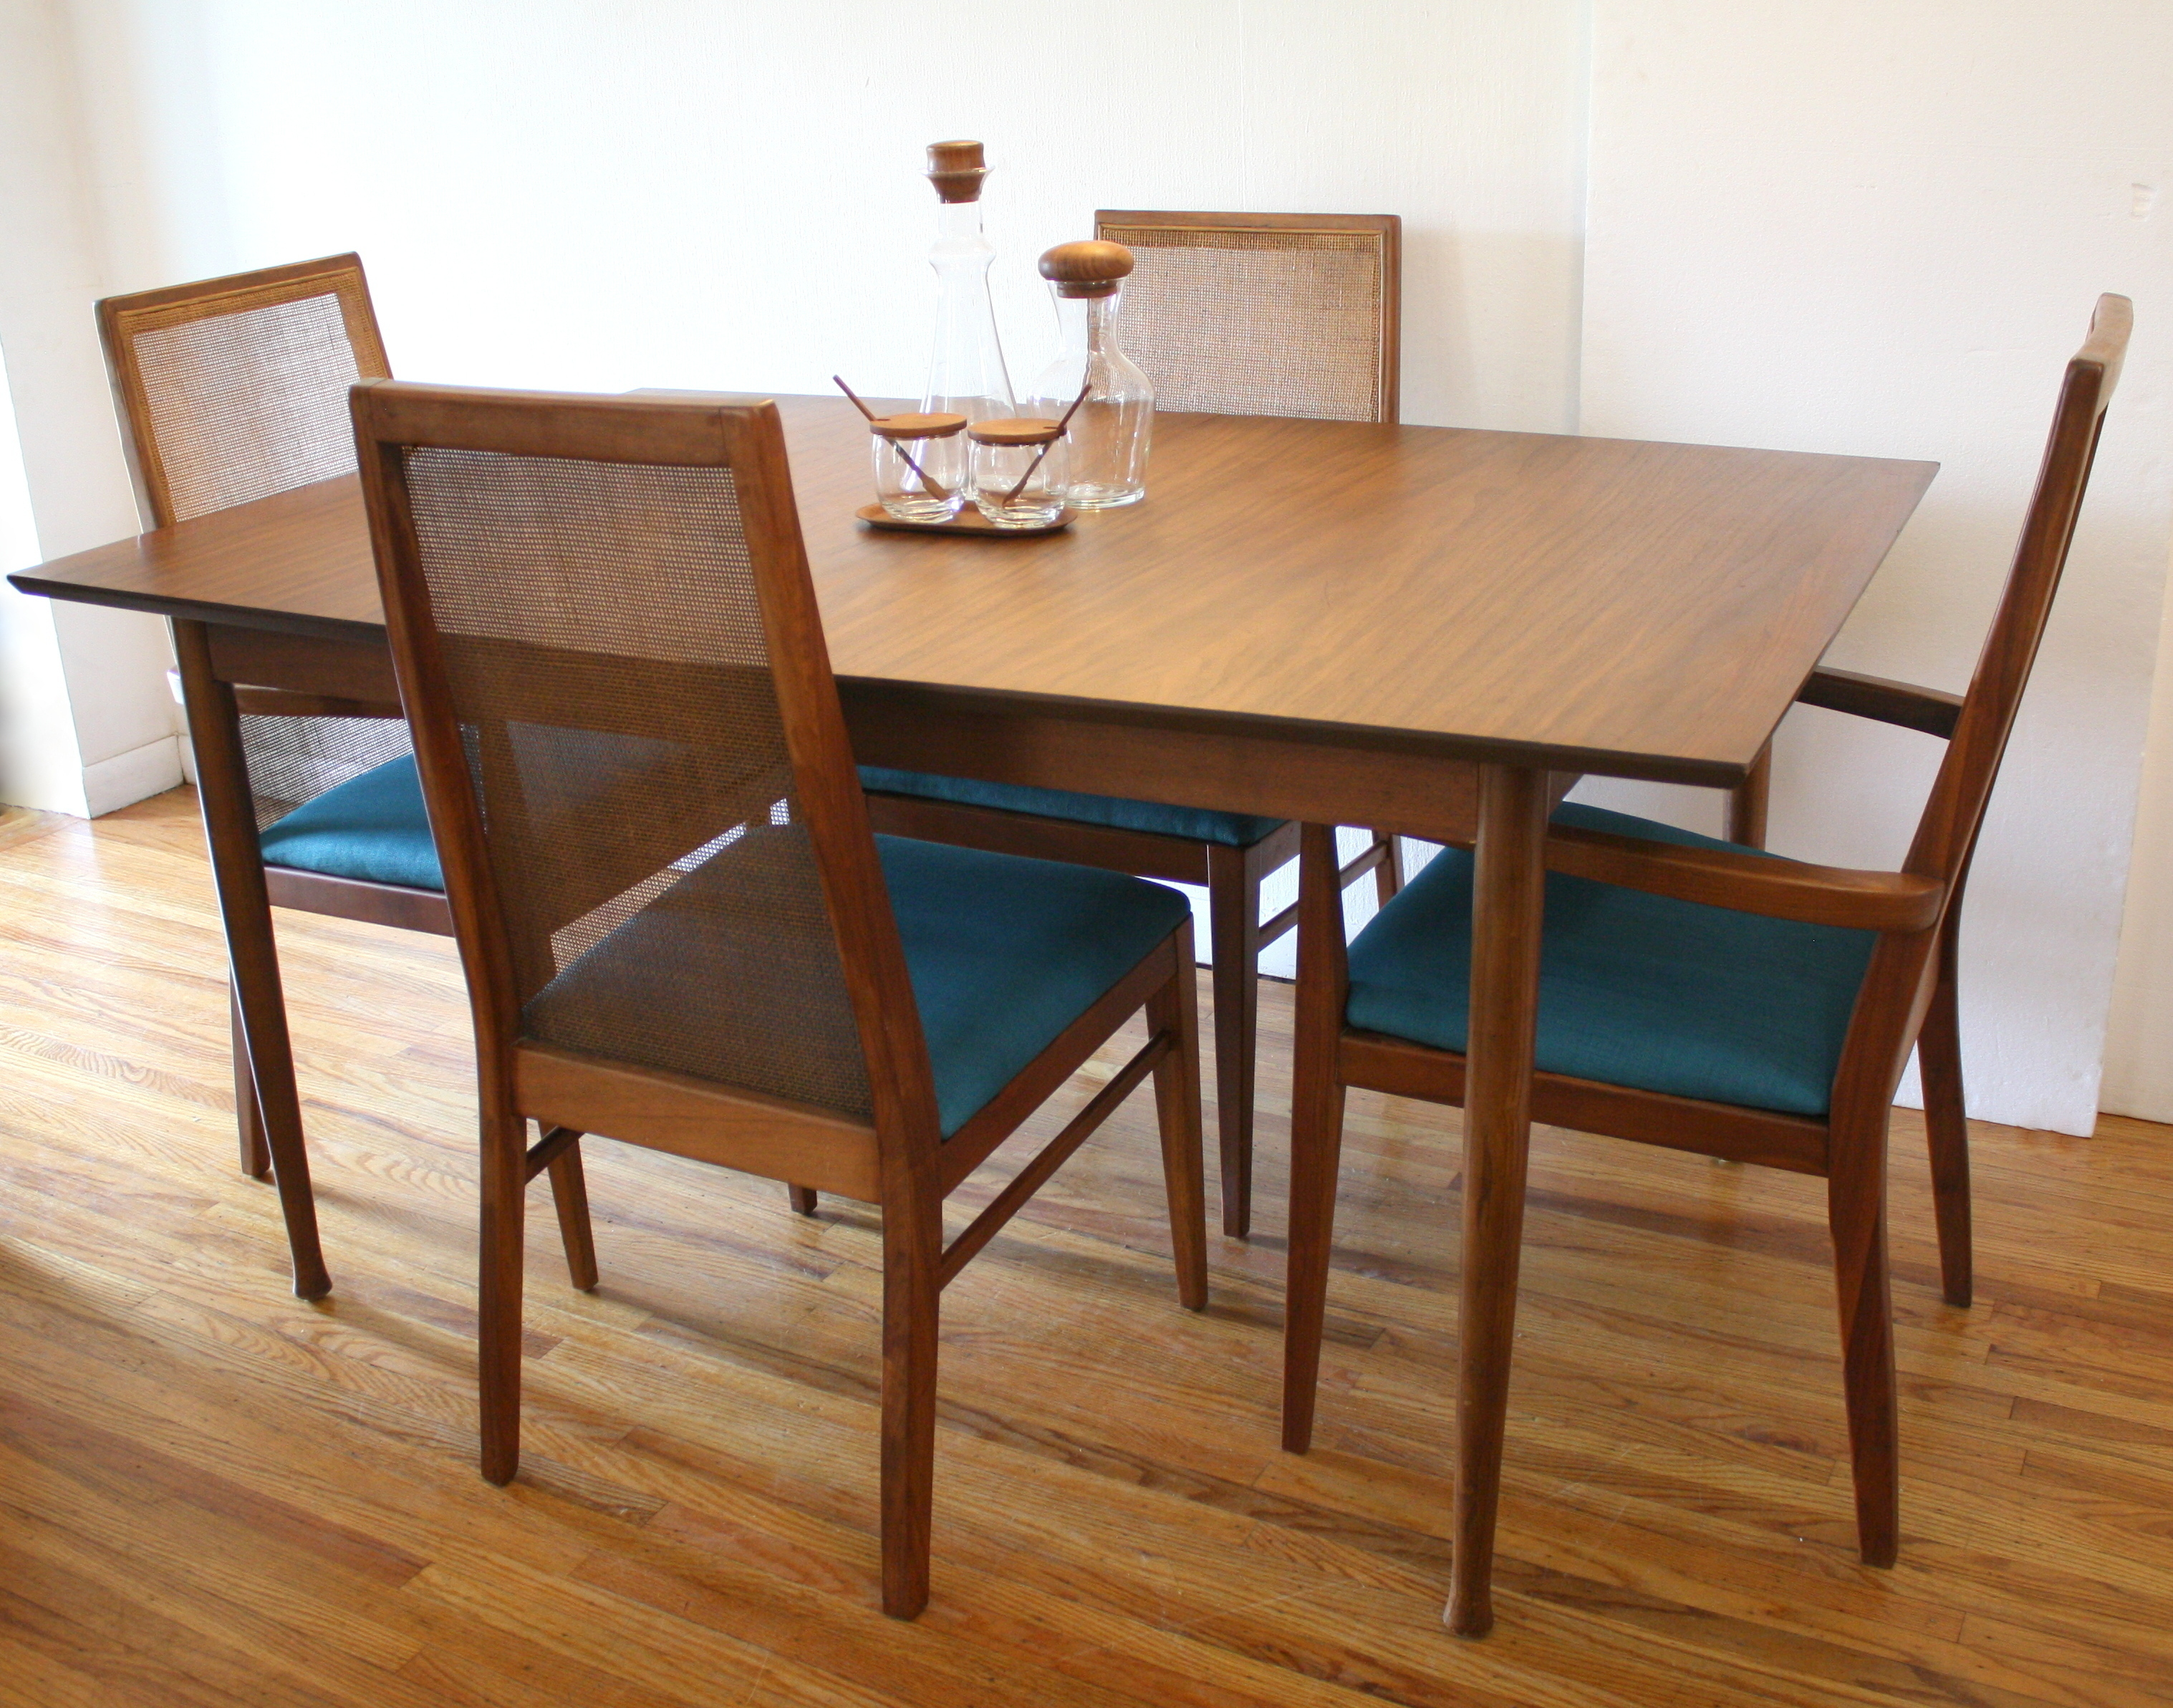 Ikea Dining Table Set 4 Chairs